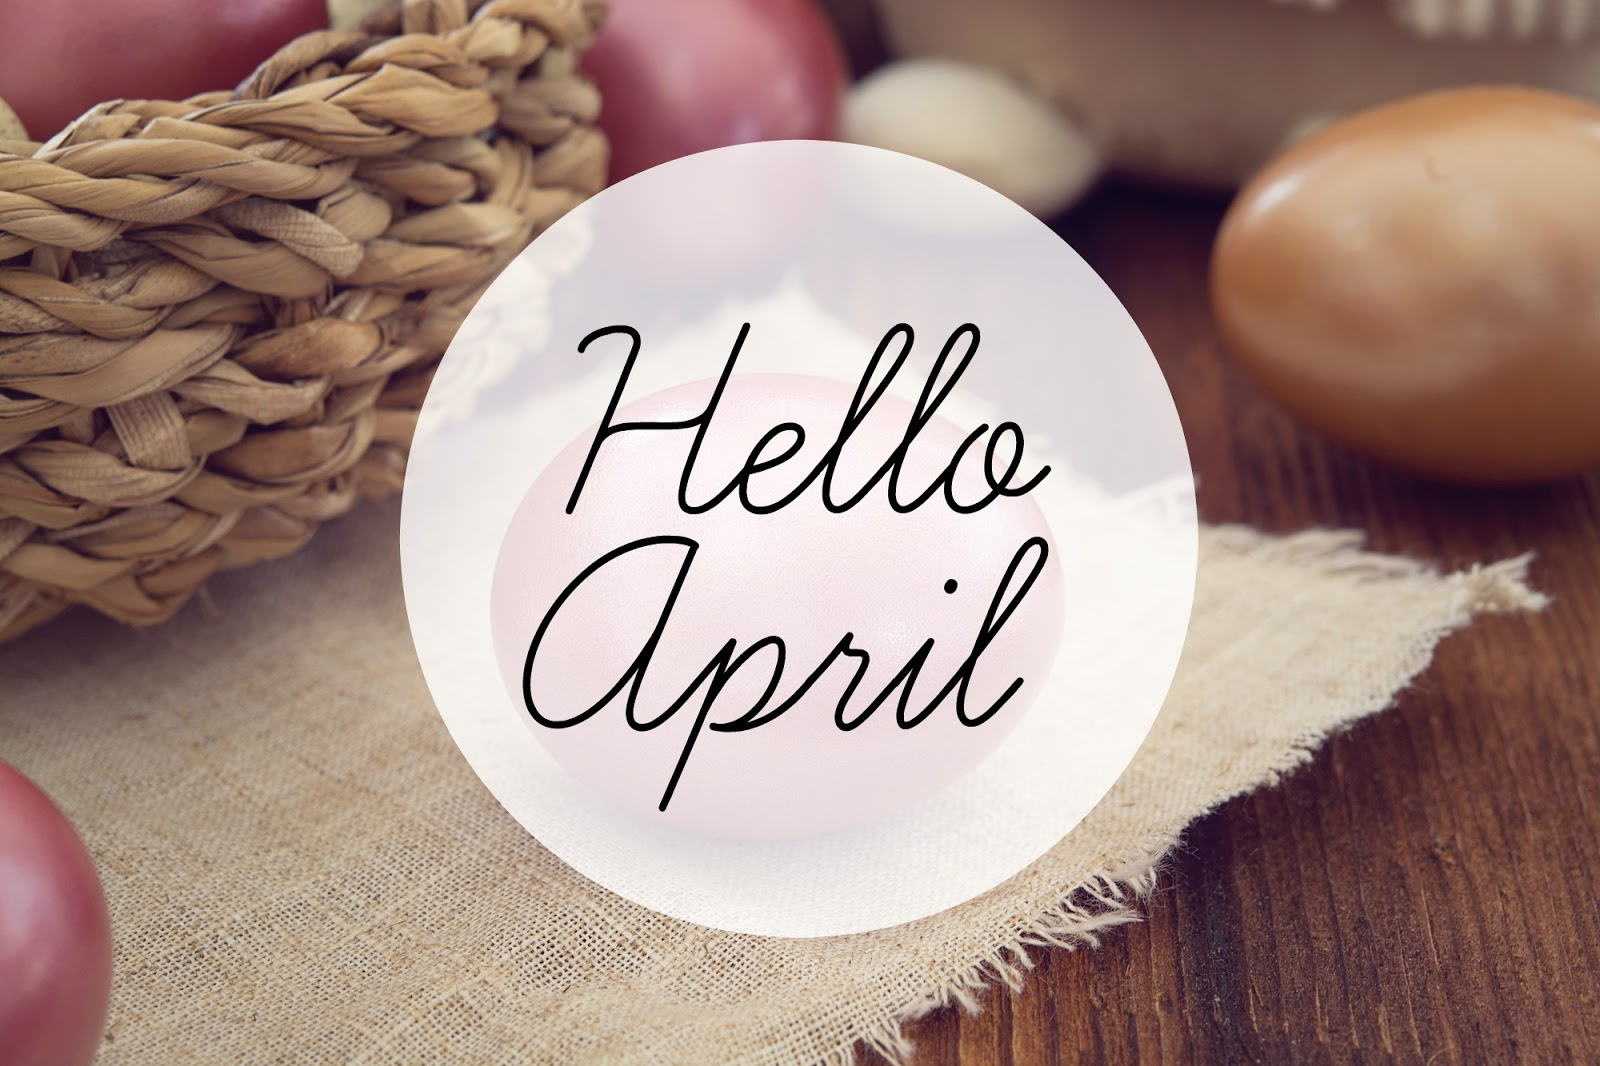 Formidable Joy | Formidable Joy Blog | Lifestyle | Hello April | The Maine | Ghost in the Shell | The Handmaid's Tale | Peskys | Peskys Vegan Brunch Club